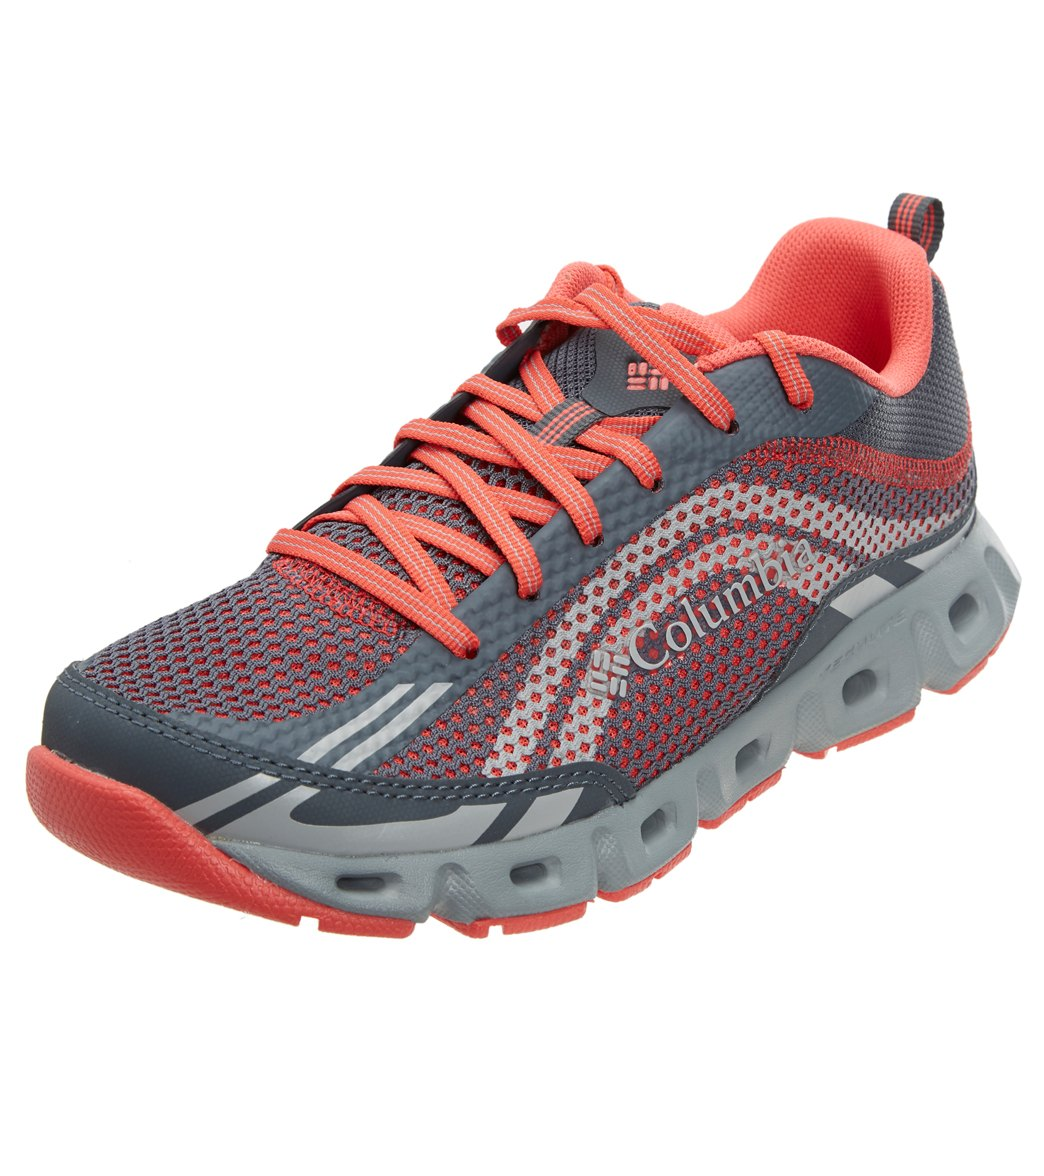 Columbia Women's Drainmaker Iv Hybrid Shoe - Graphite Red Coral 7.5 Graphite - Swimoutlet.com